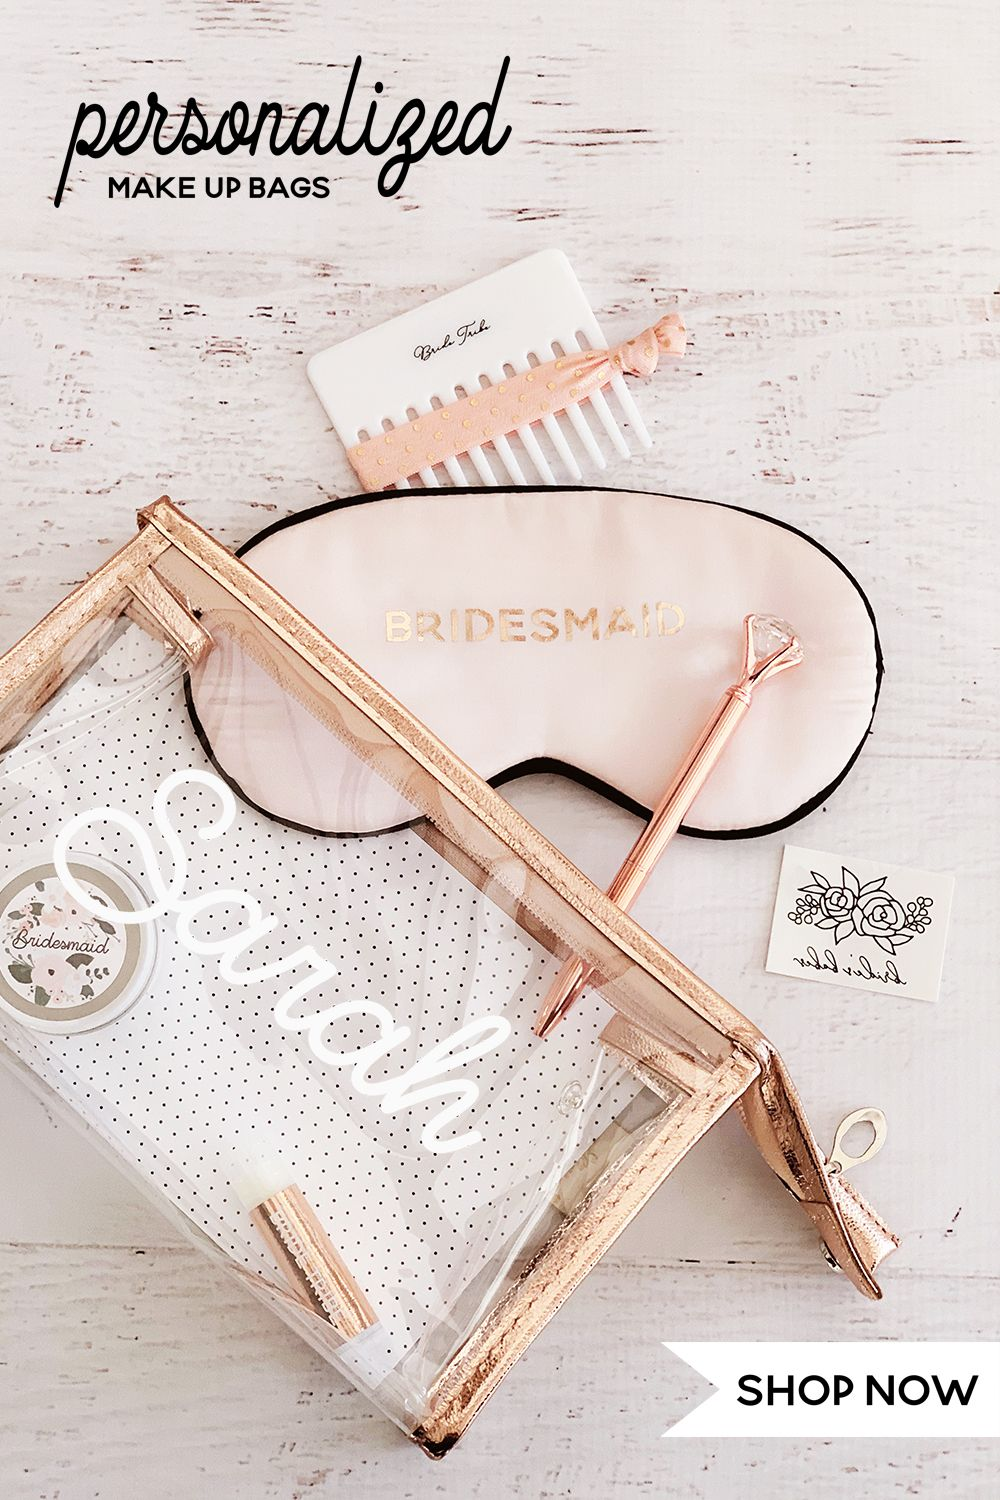 Metallic Makeup Bags Personalized in 2020 Makeup bag